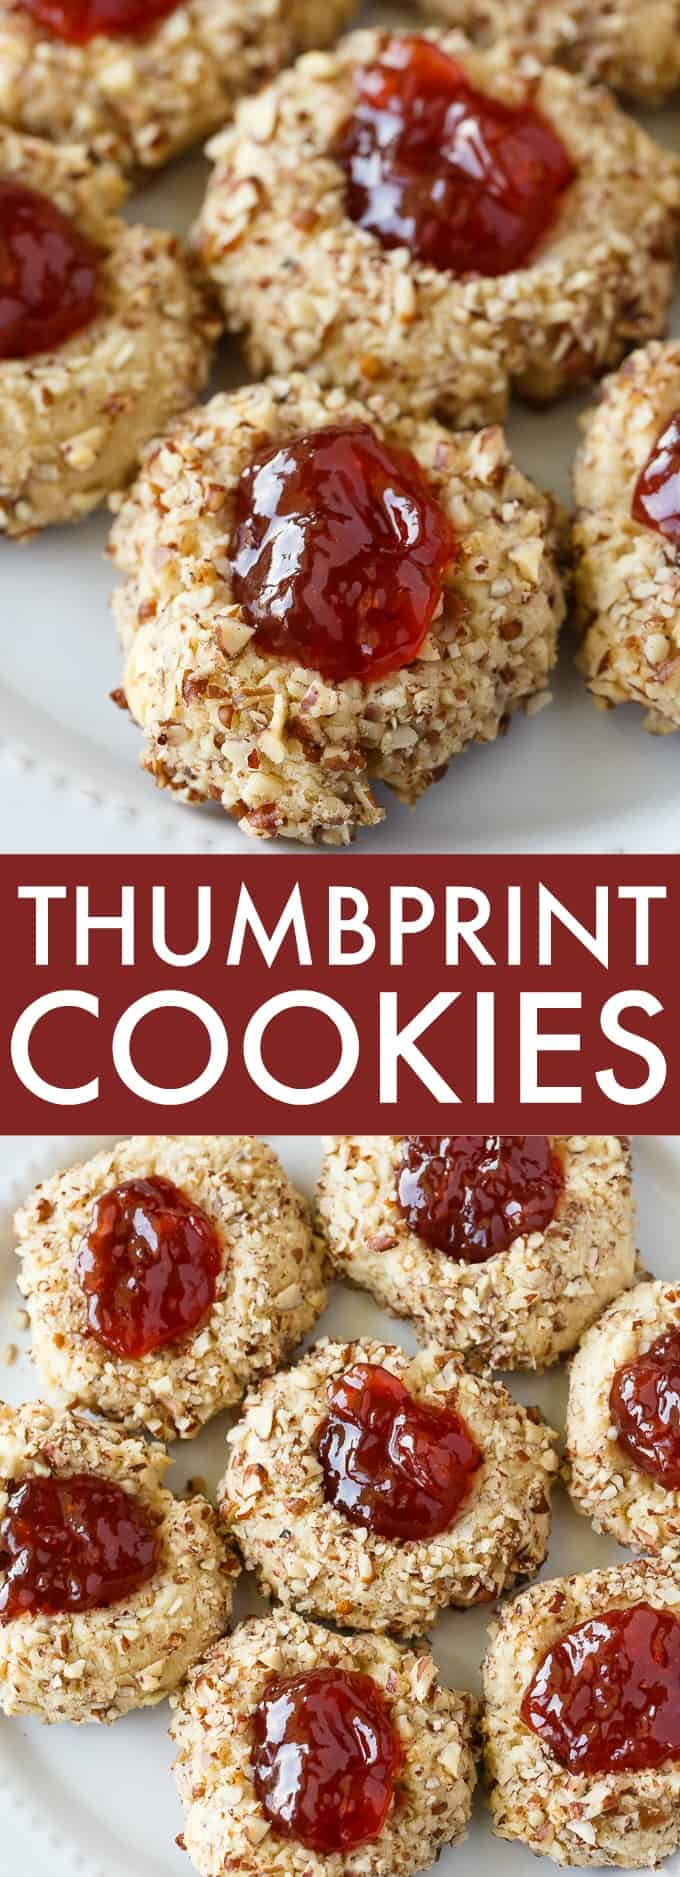 Thumbprint Cookies - A super simple, but festive classic Christmas cookie! Baked to perfection and topped with jam.